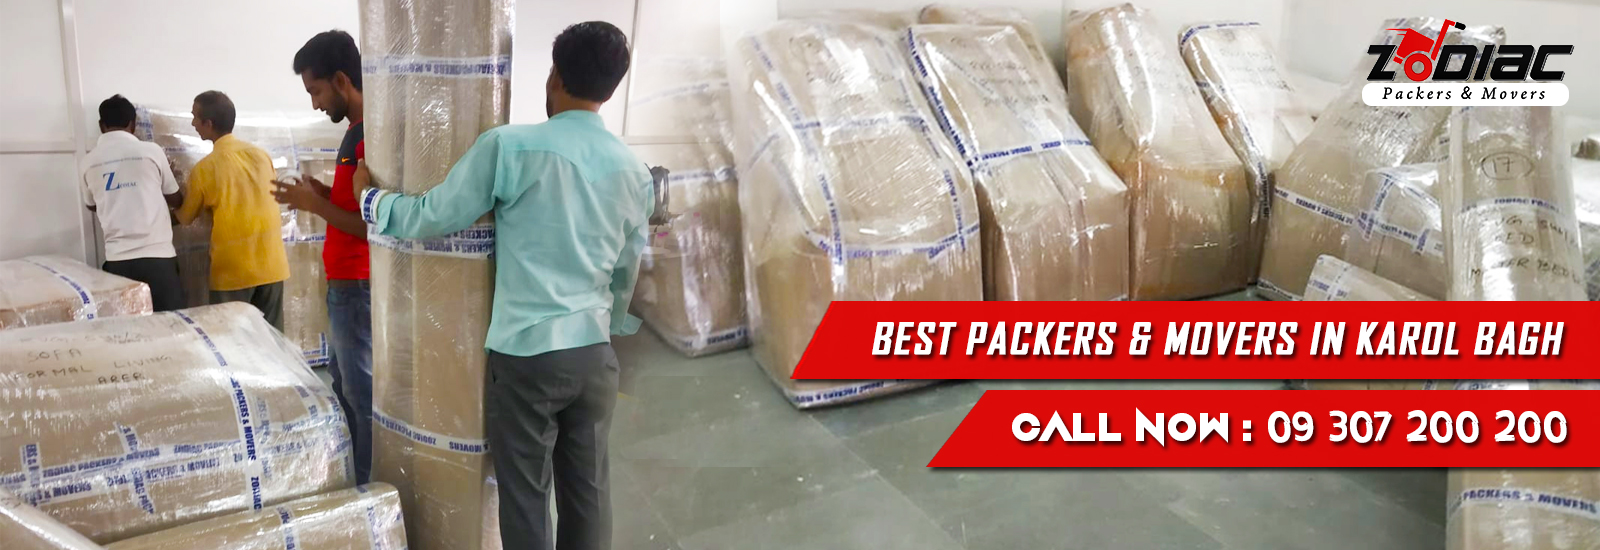 Packers and Movers in Karol Bagh